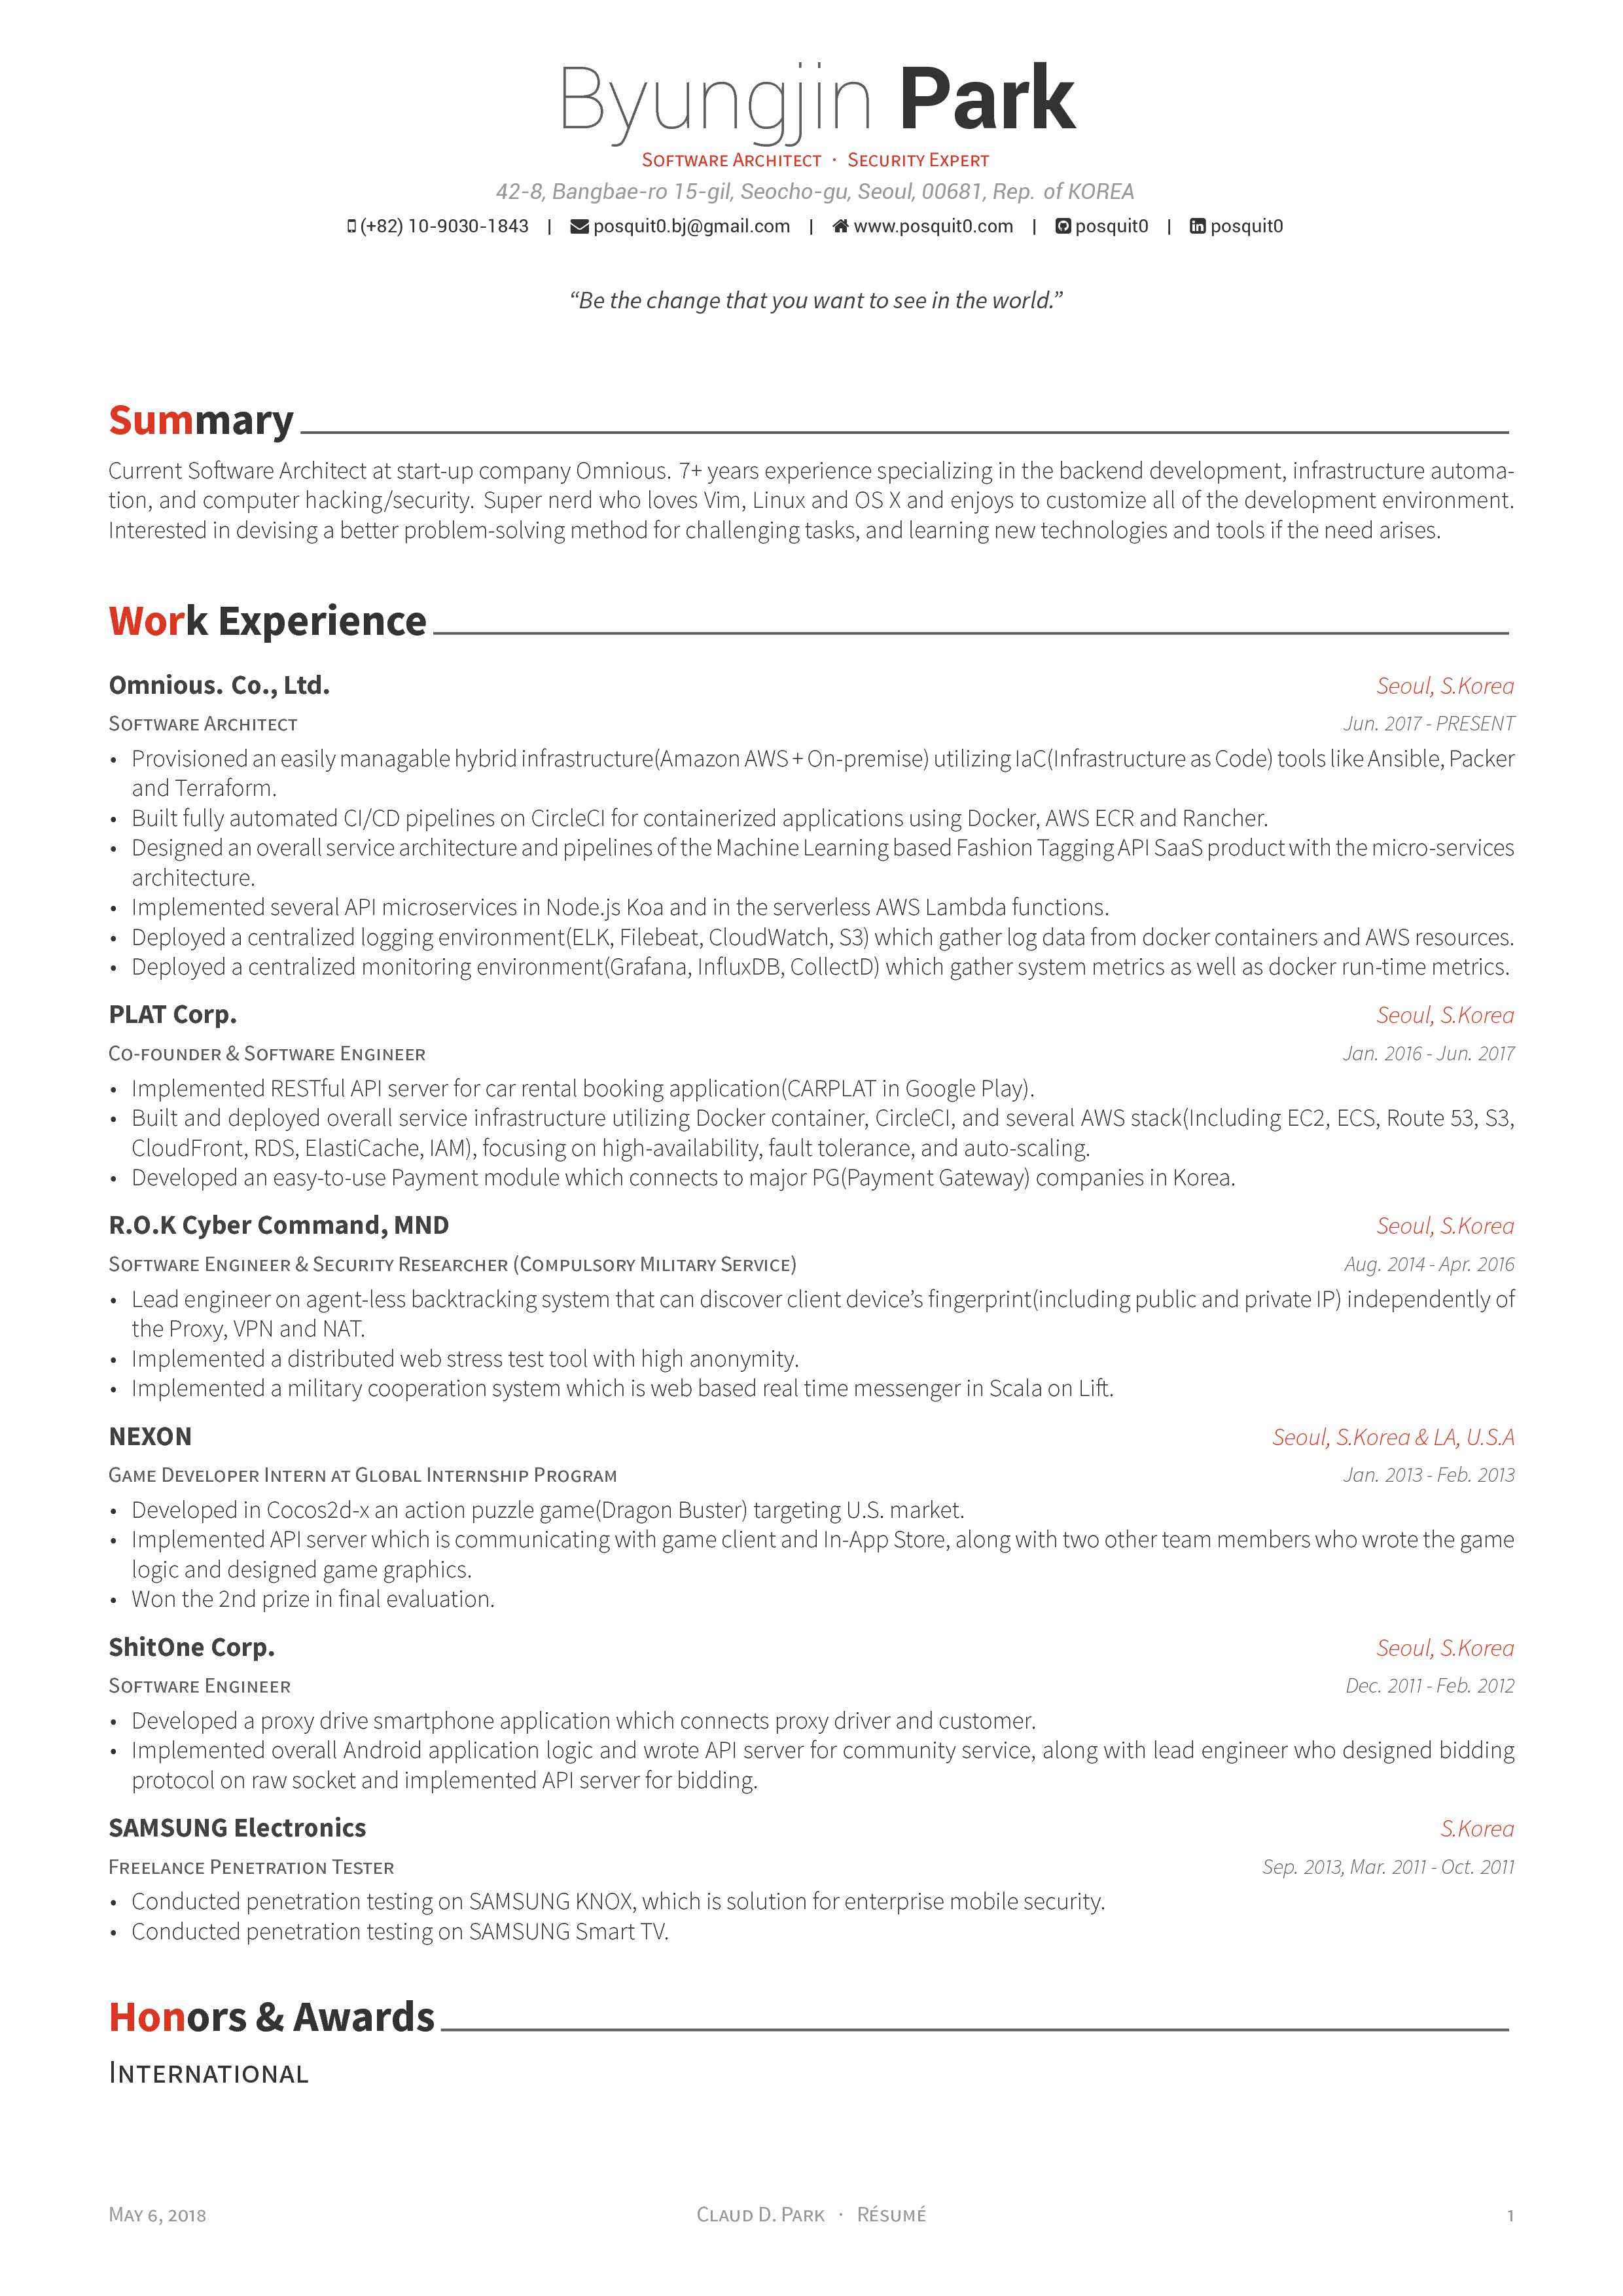 Designers Resume Github  Posquitawesomecv Awesome Cv Is Latex Template For  How To Write References On A Resume Excel with Retail Sales Associate Job Description Resume Excel Rsum Rsum Words To Use On Your Resume